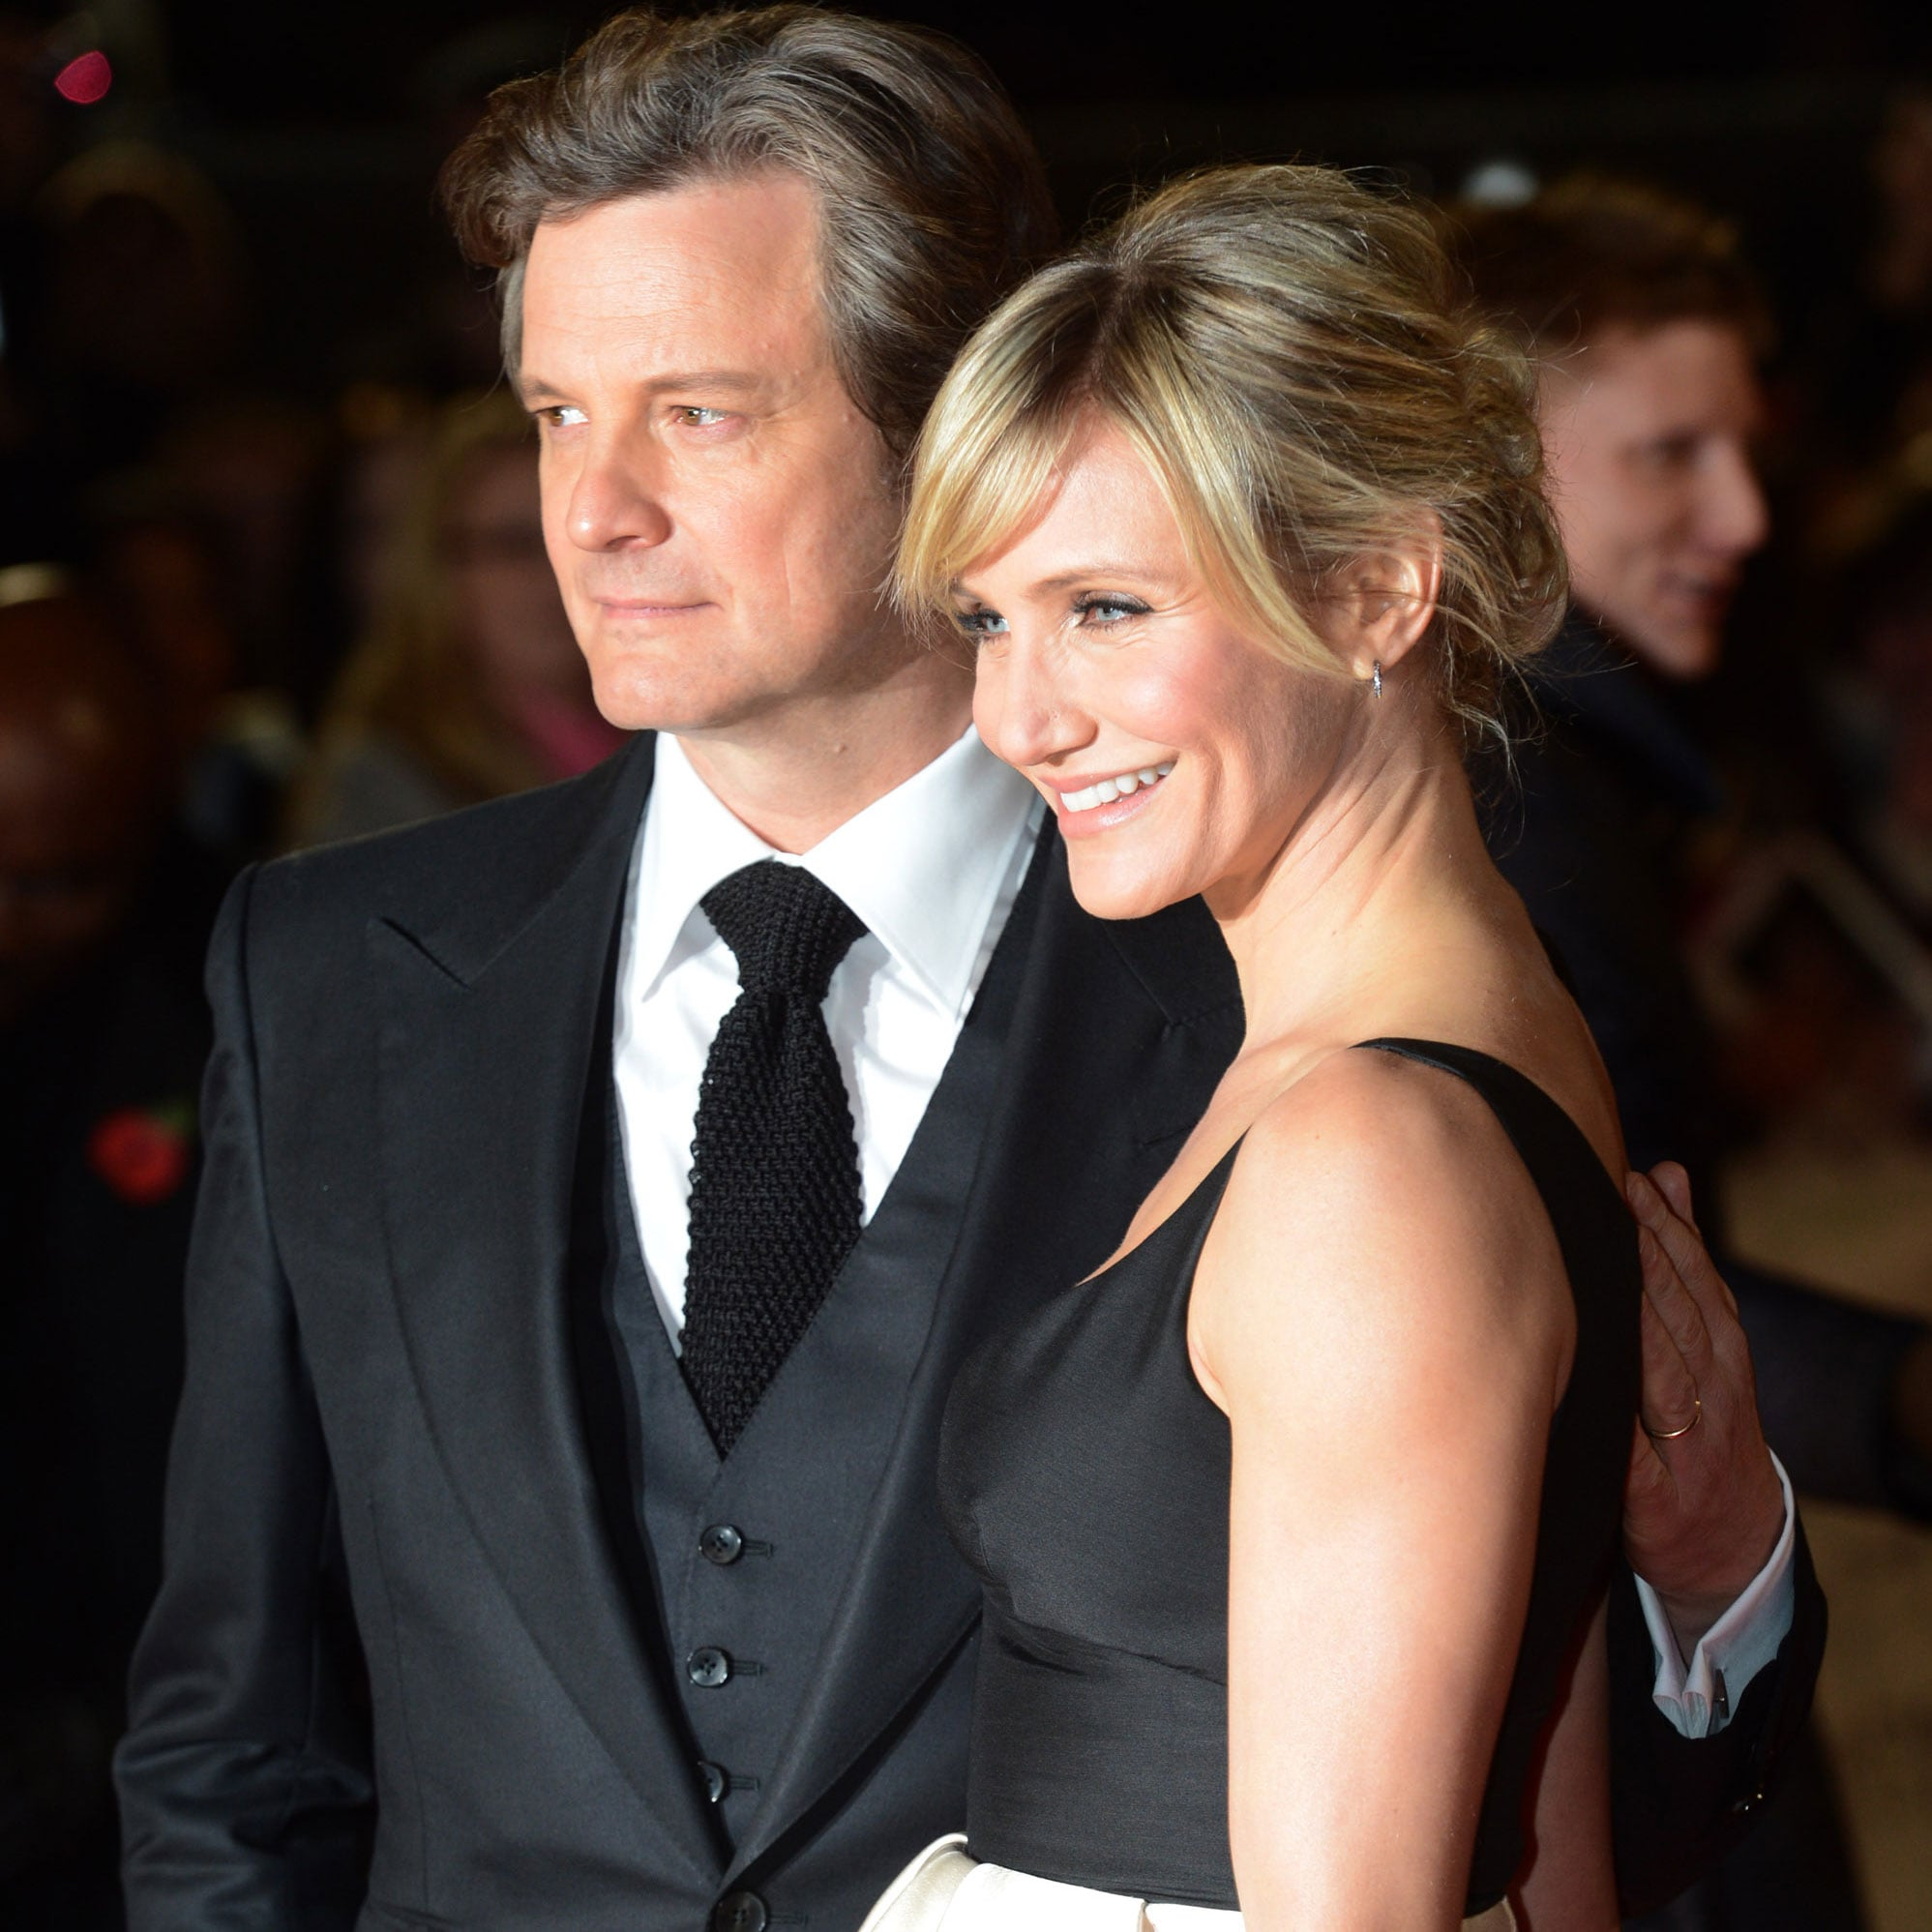 Colin firth dating